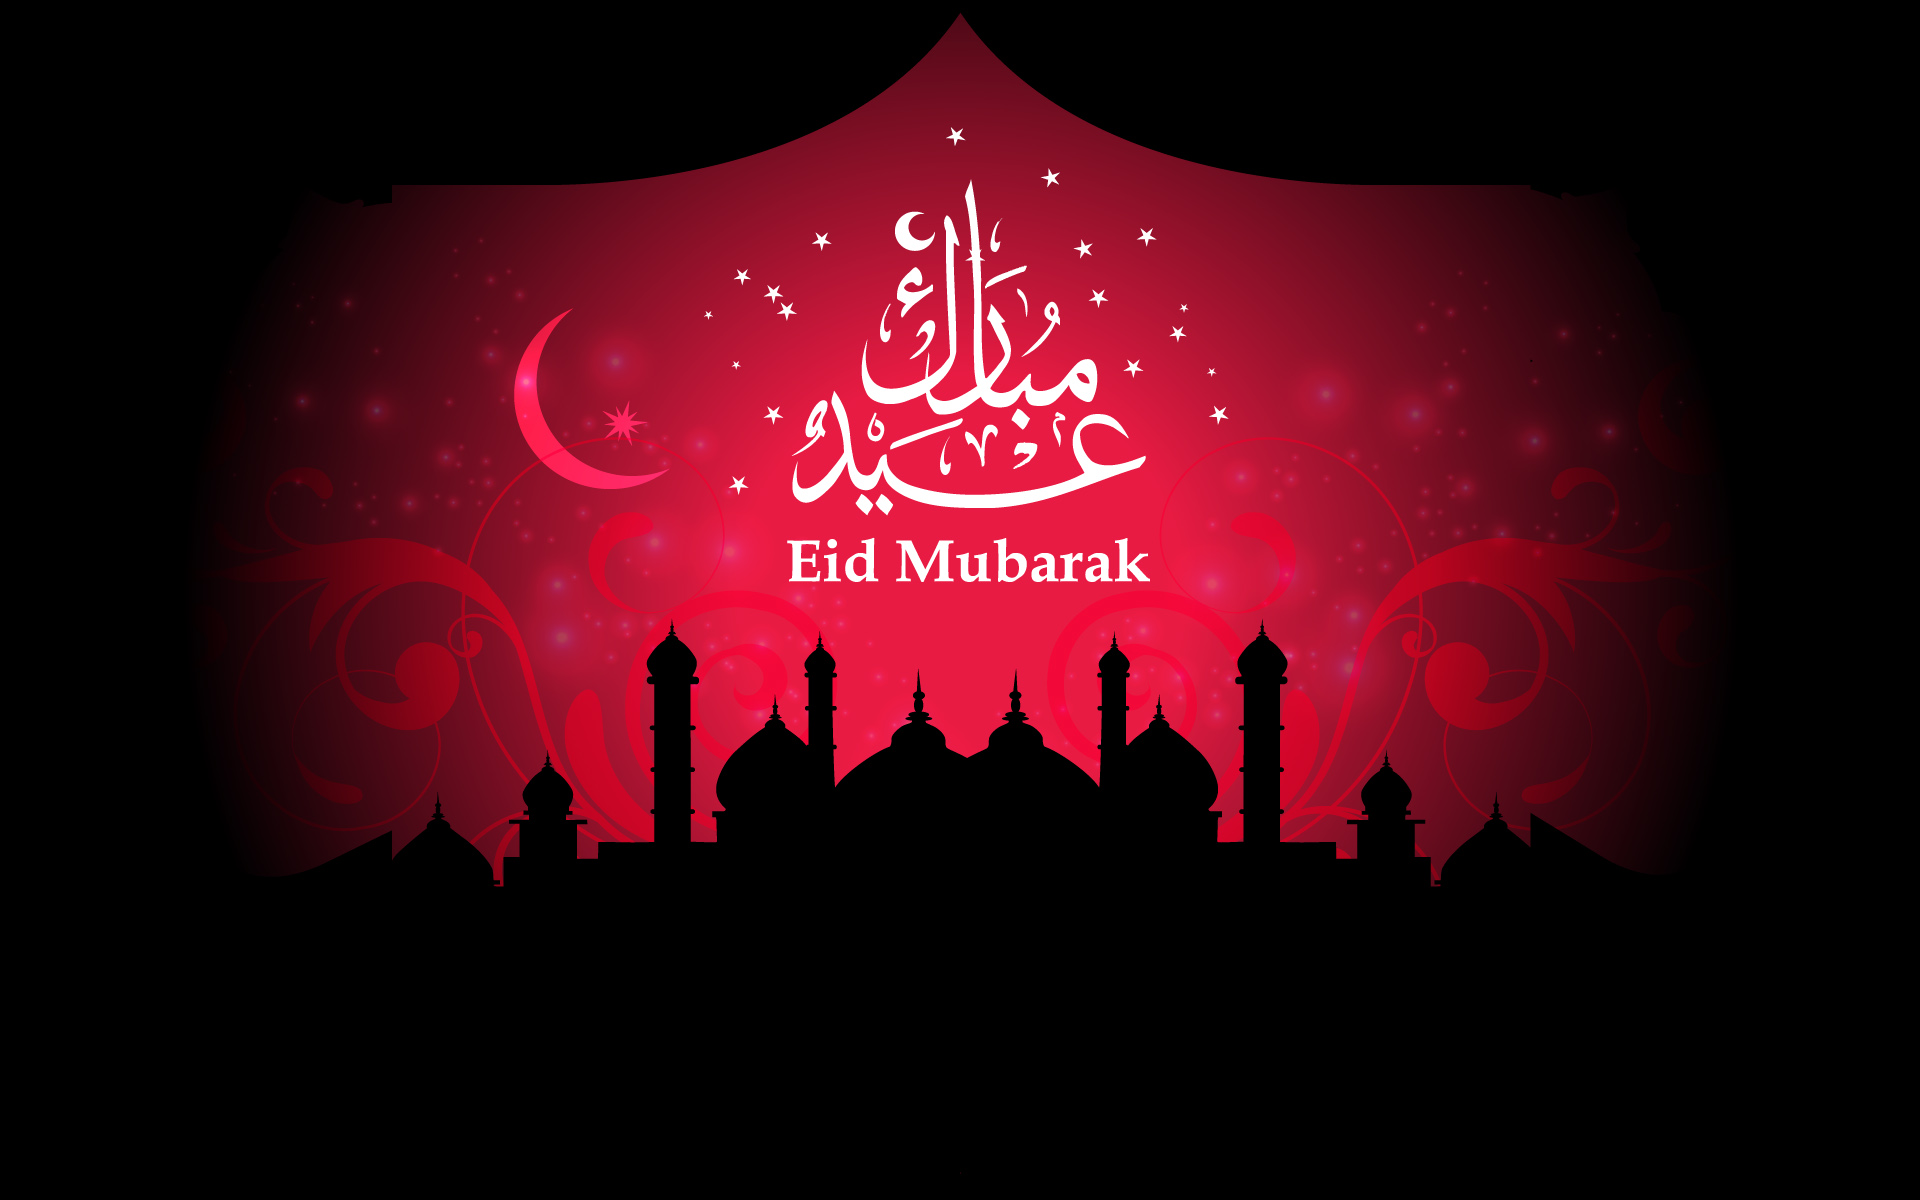 Happy Eid 2017 Whatsapp Status Wishes Messages Wallpapers Fb Dp covers